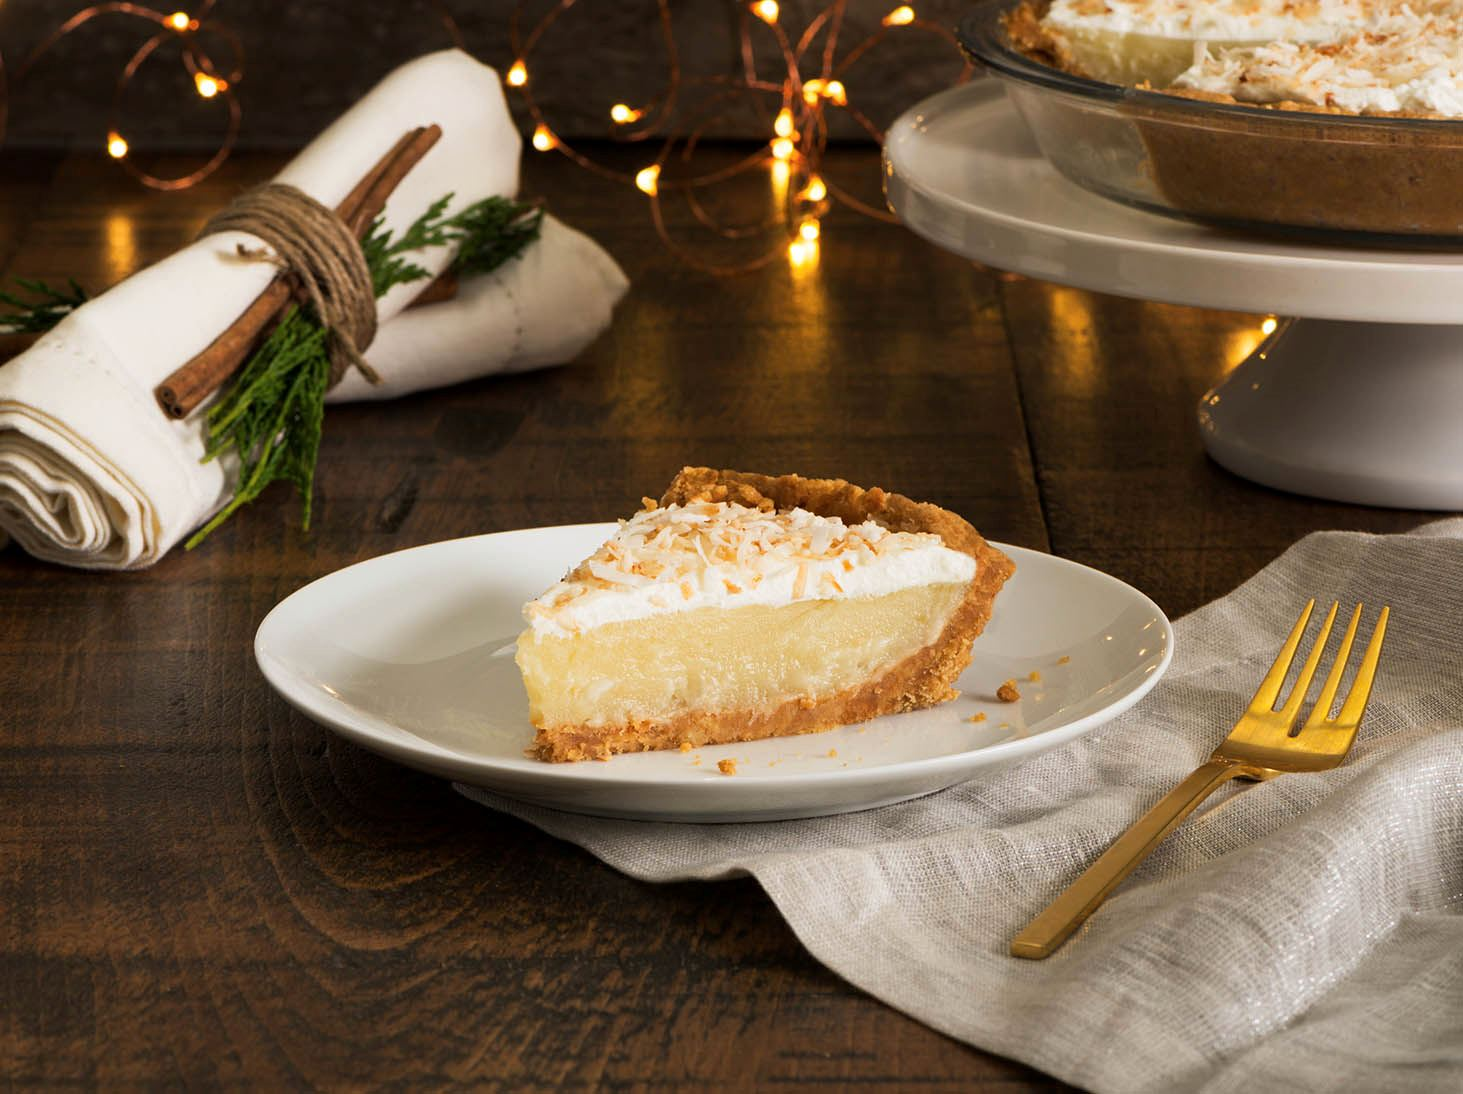 Coconut Eggnog Cream Pie